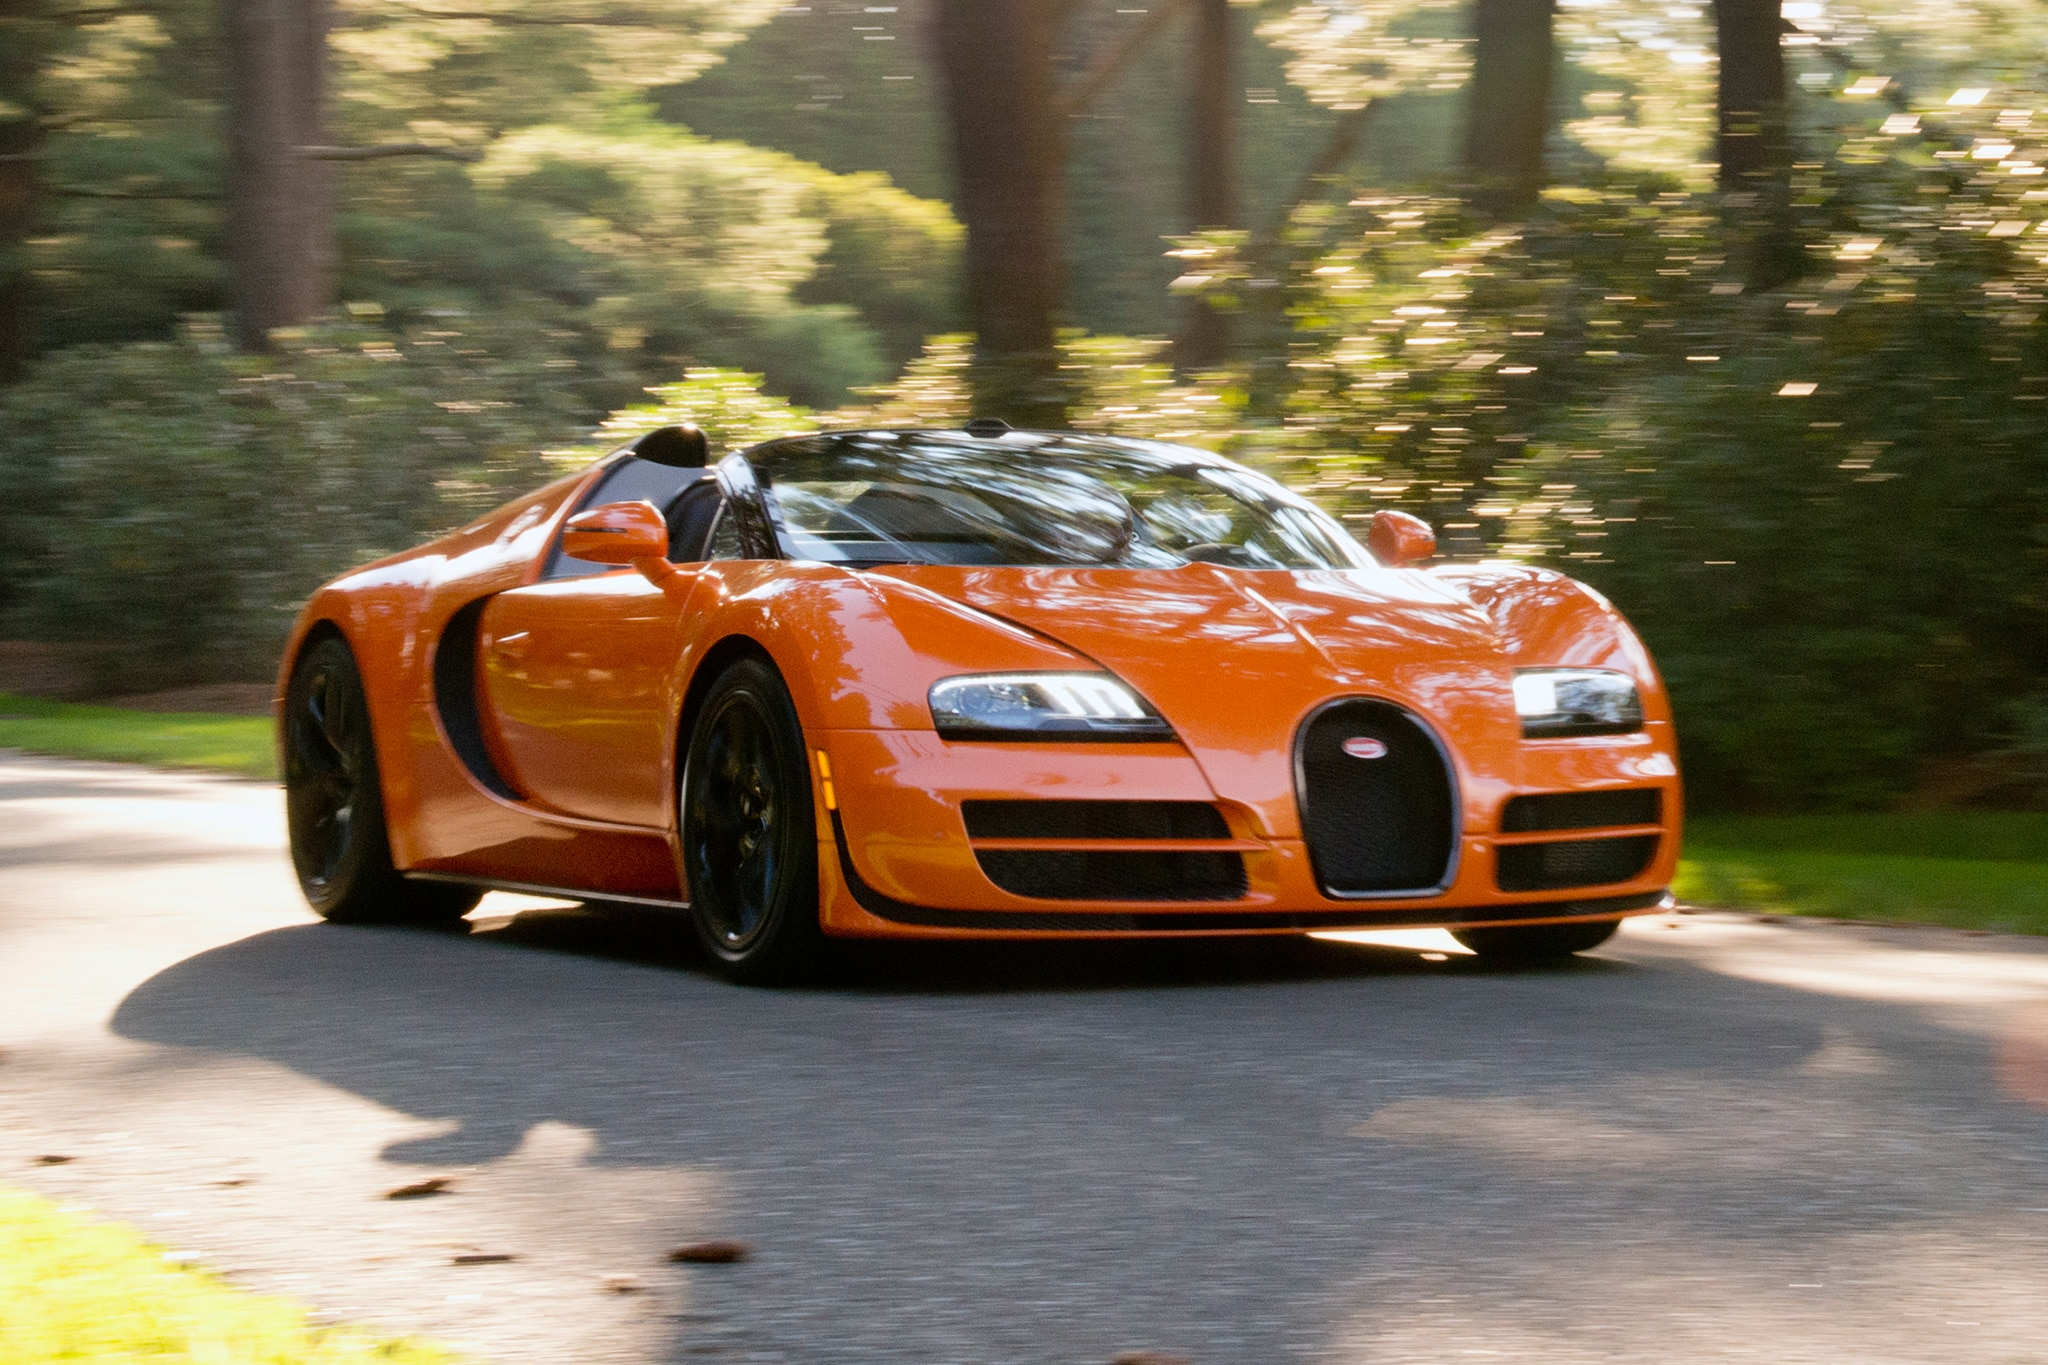 2013 Bugatti Veyron Grand Sport Vitesse Three Quarters View1